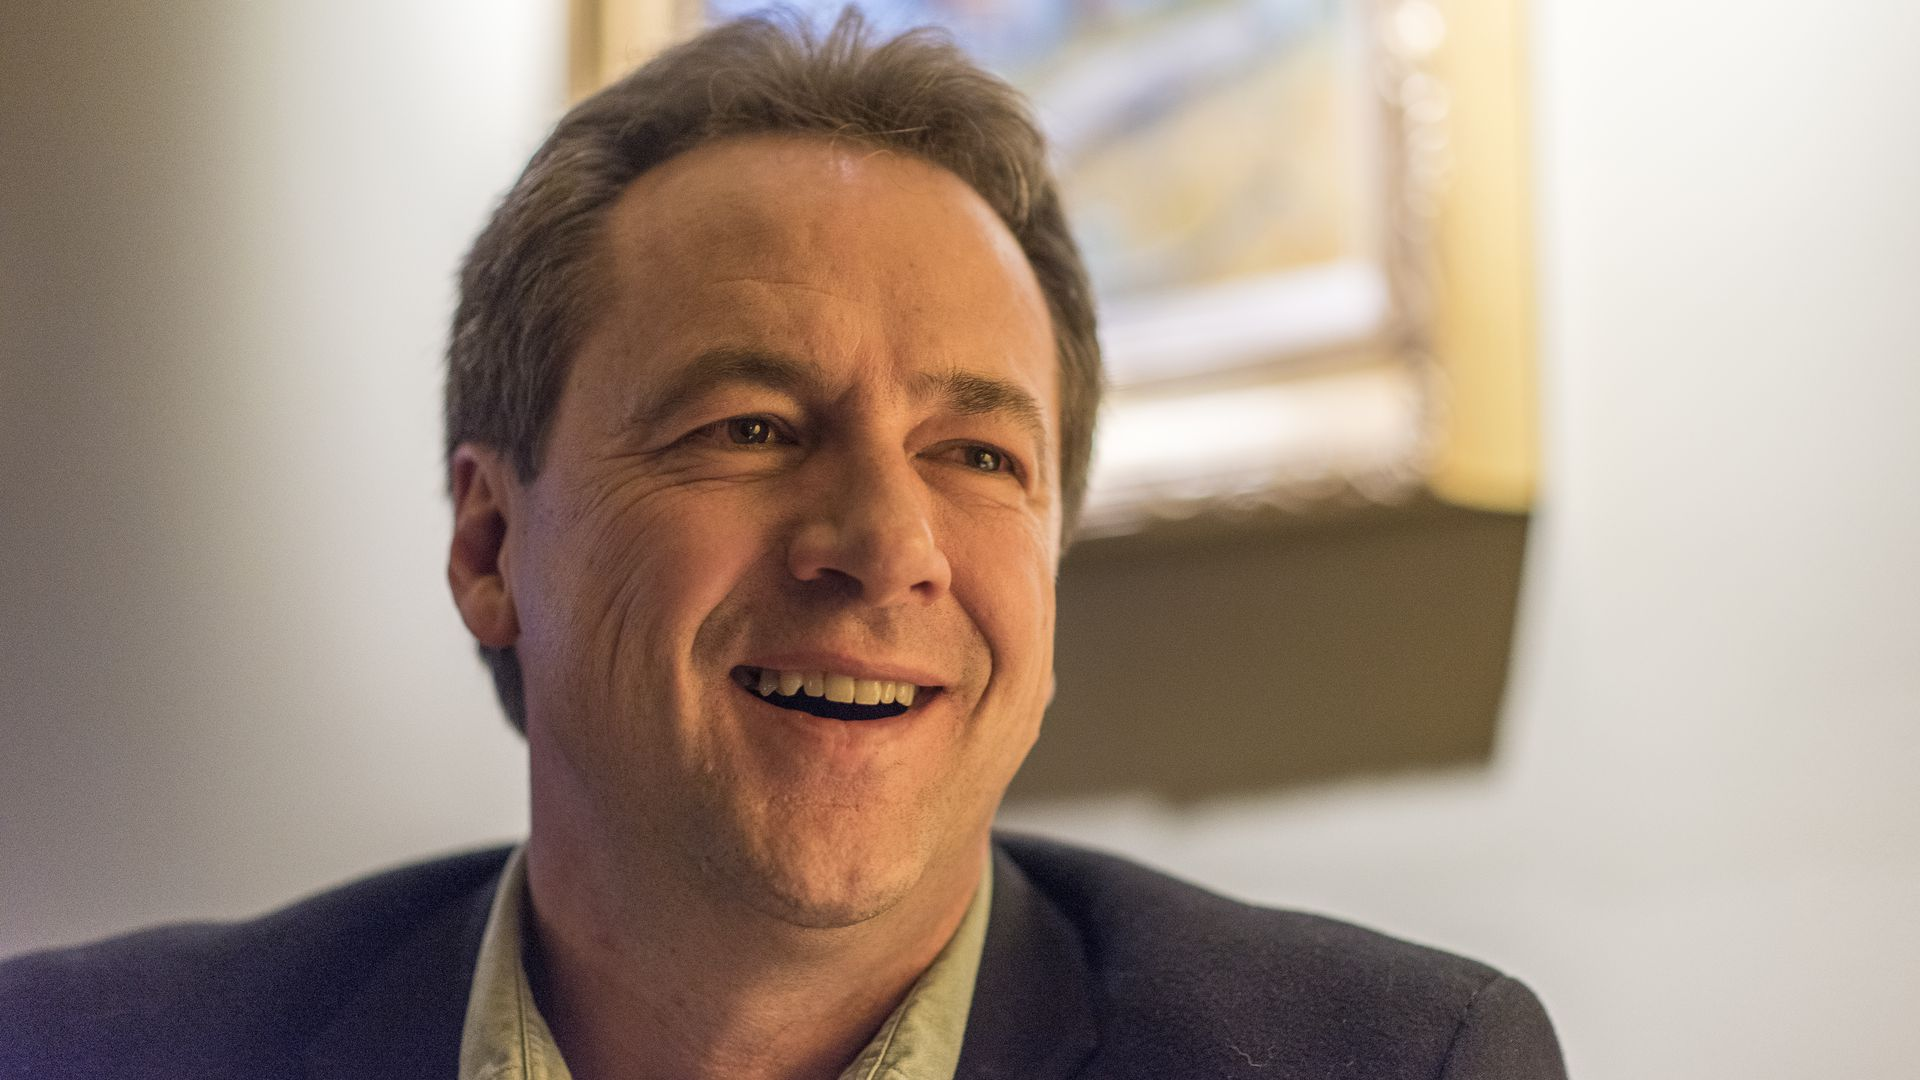 Steve Bullock on the issues, in under 500 words